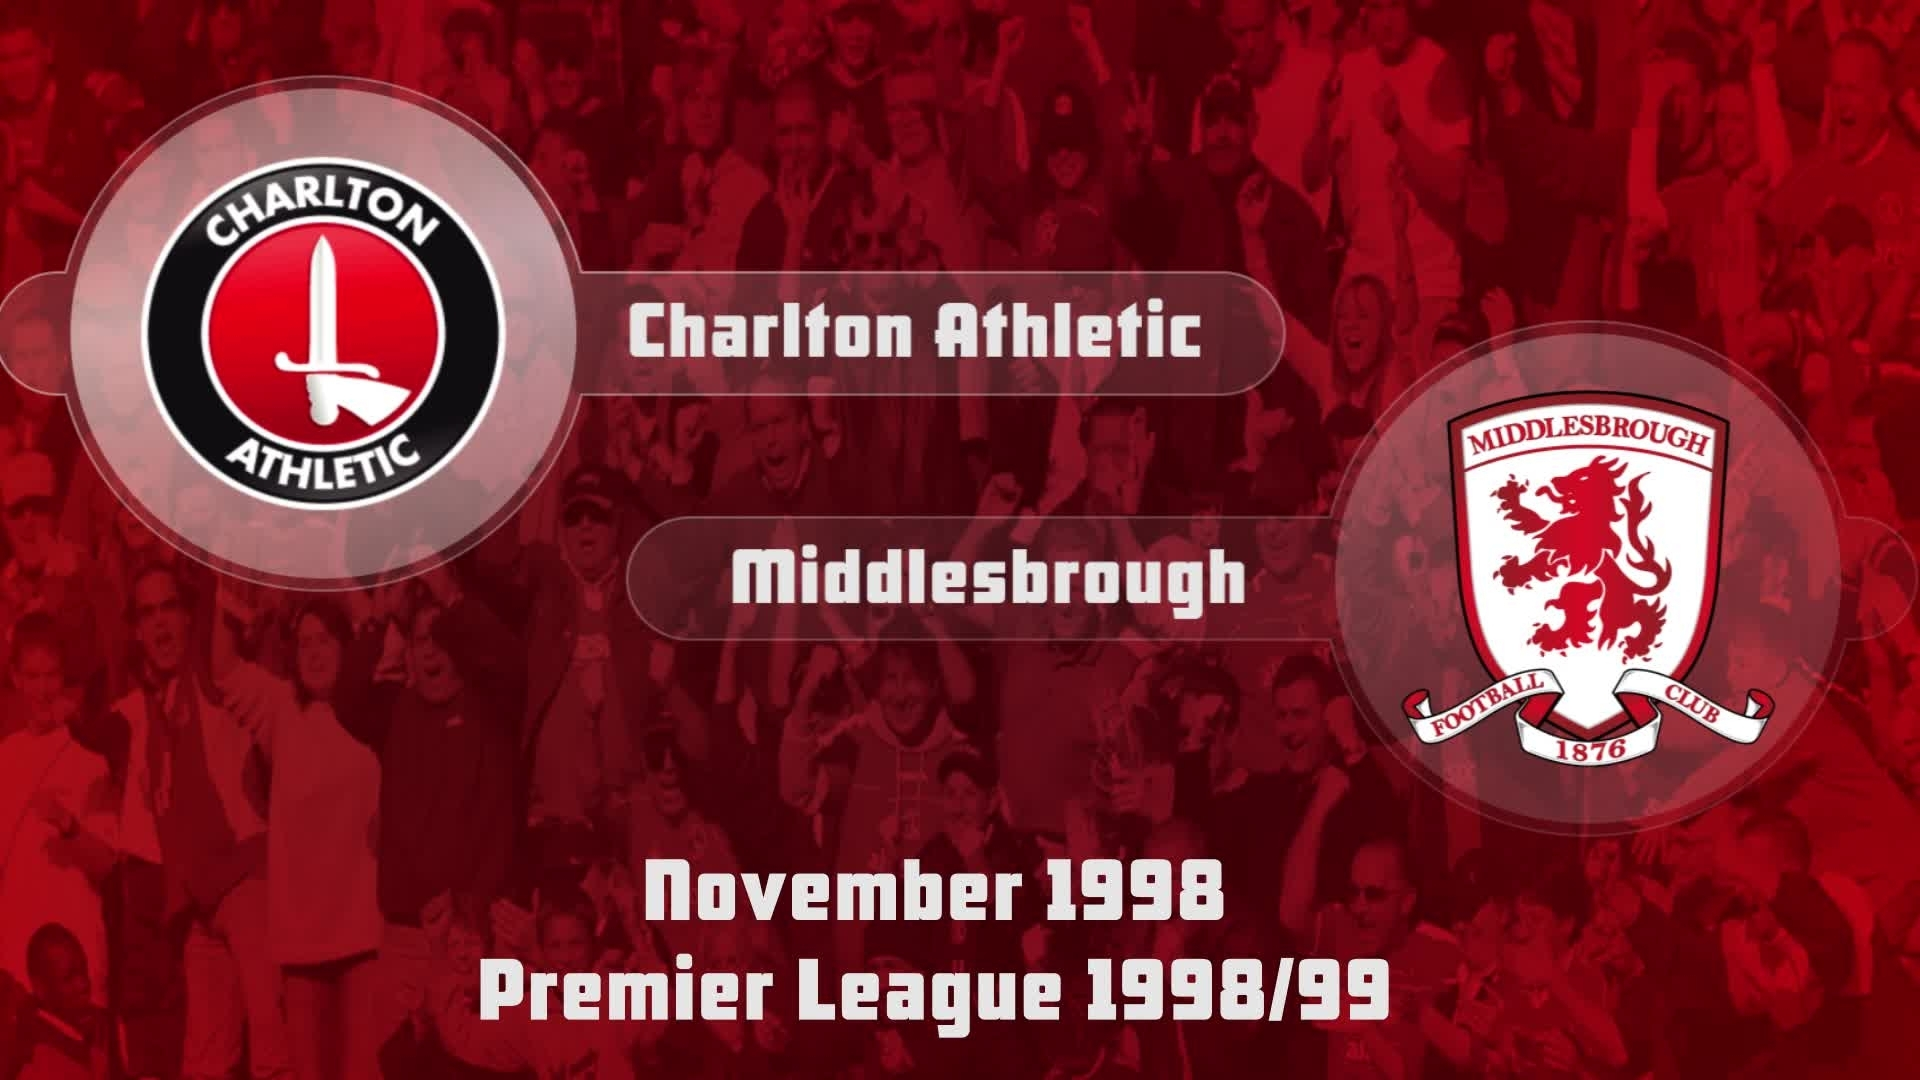 16 HIGHLIGHTS | Charlton 1 Middlesbrough 1 (Nov 1998)